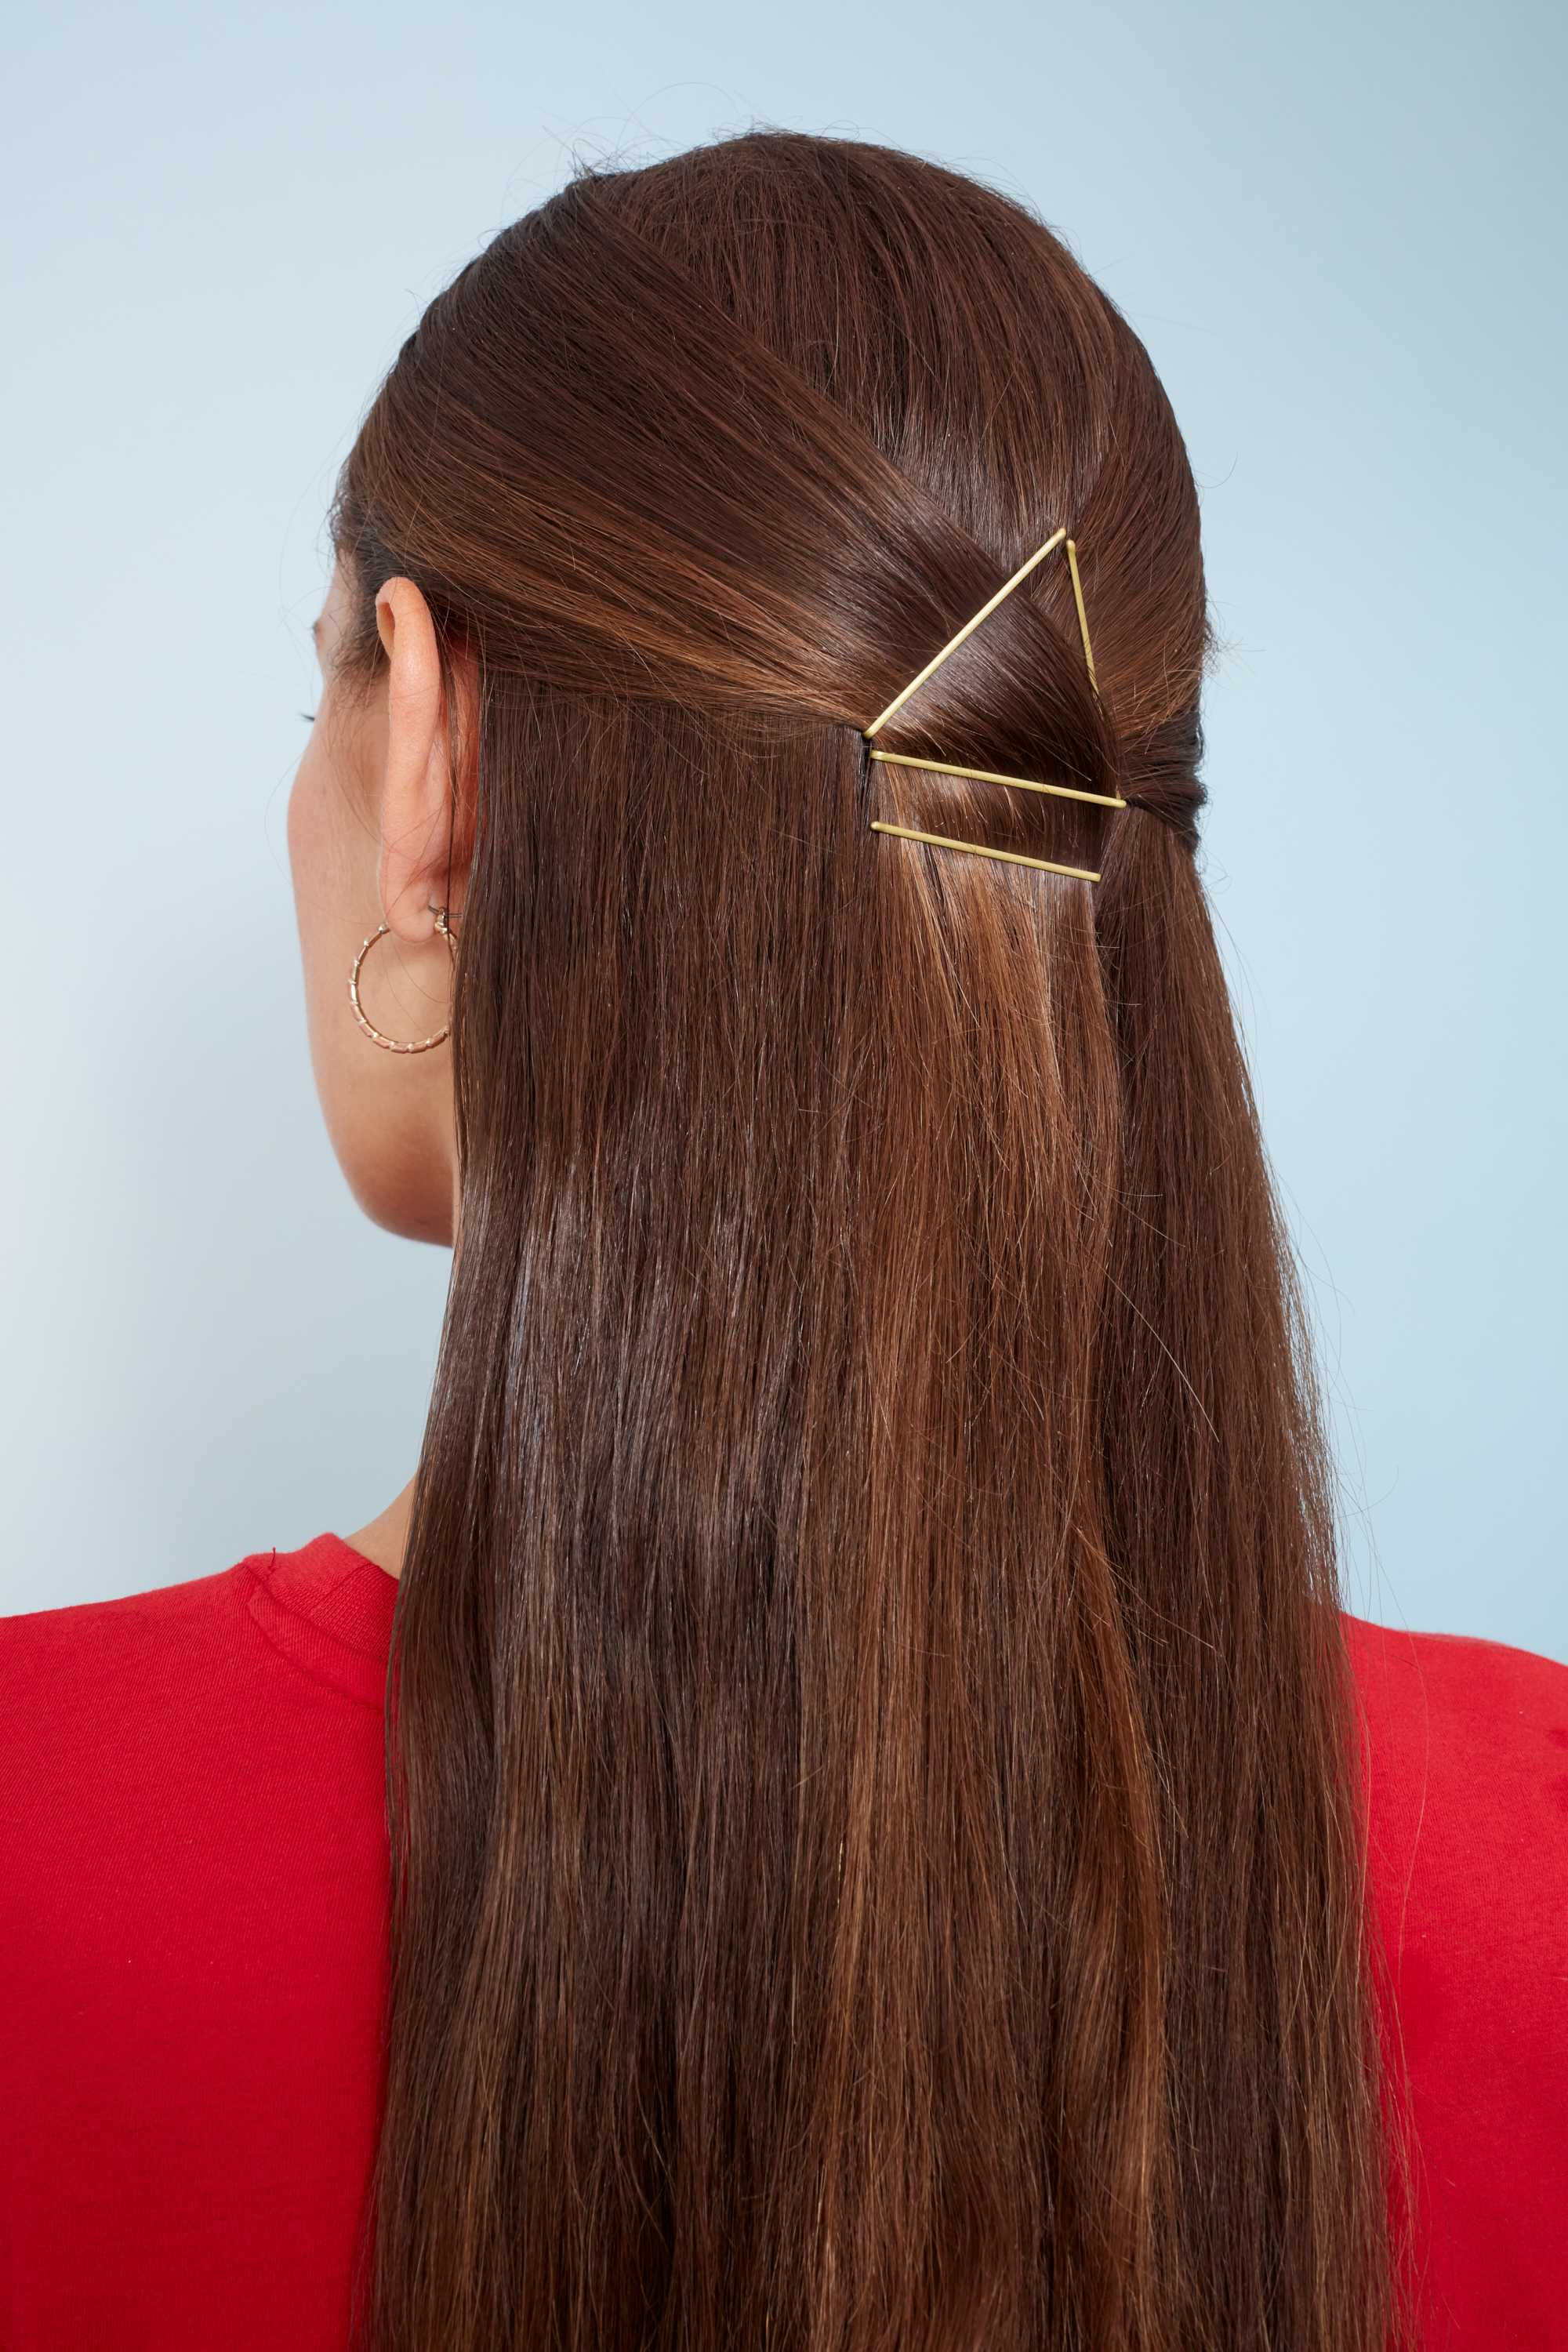 Bobby pin hairstyles: Close up shot of a woman with long chestnut brown hair styled into a half-up, half-down hairstyle with bobby pins styled into a triangular shape